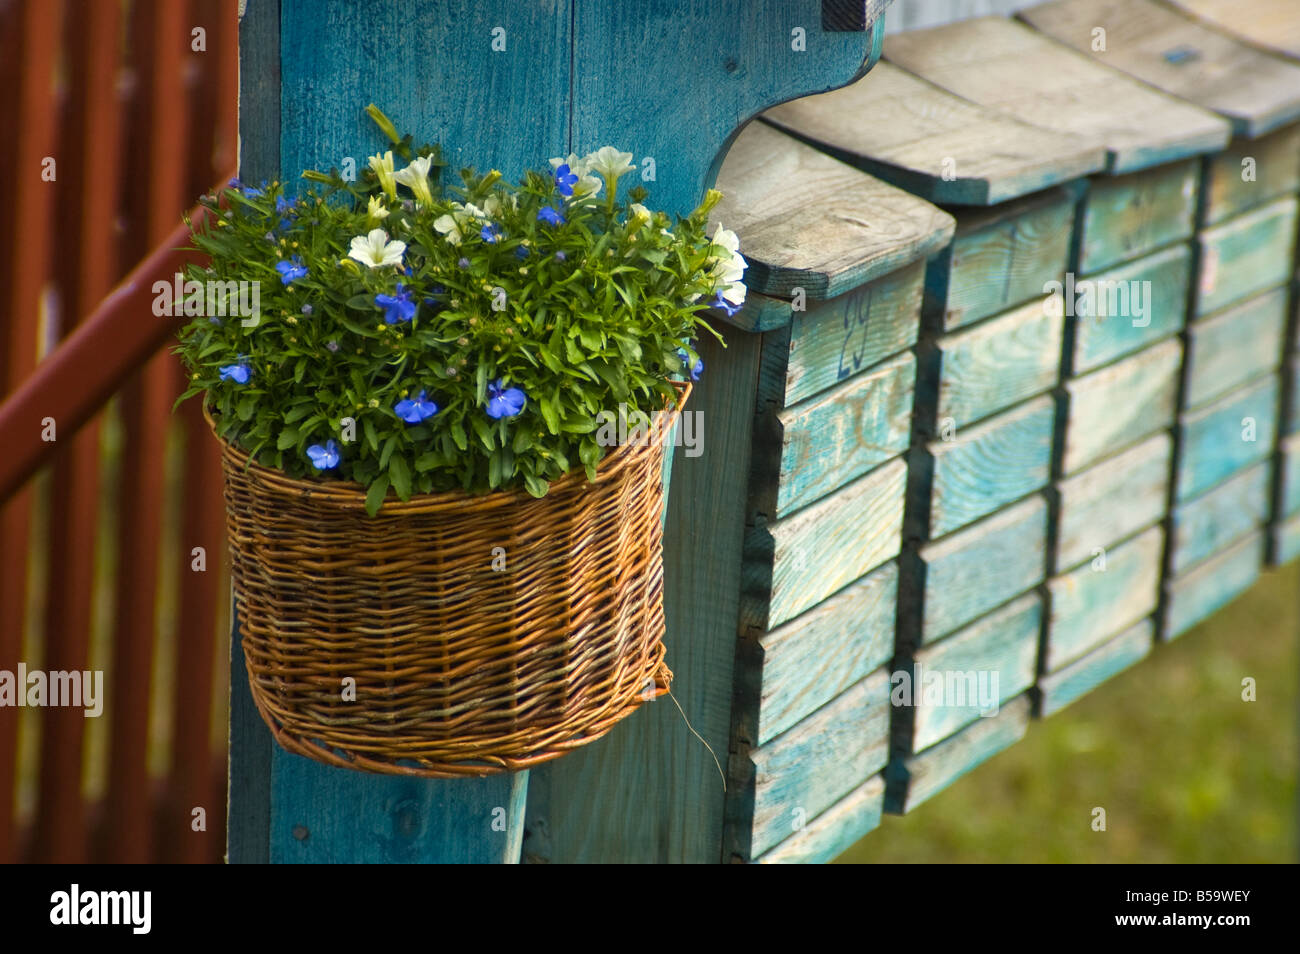 Flowers in a basket at the end of line of post boxes in Tällberg, Dalarna, Sweden - Stock Image